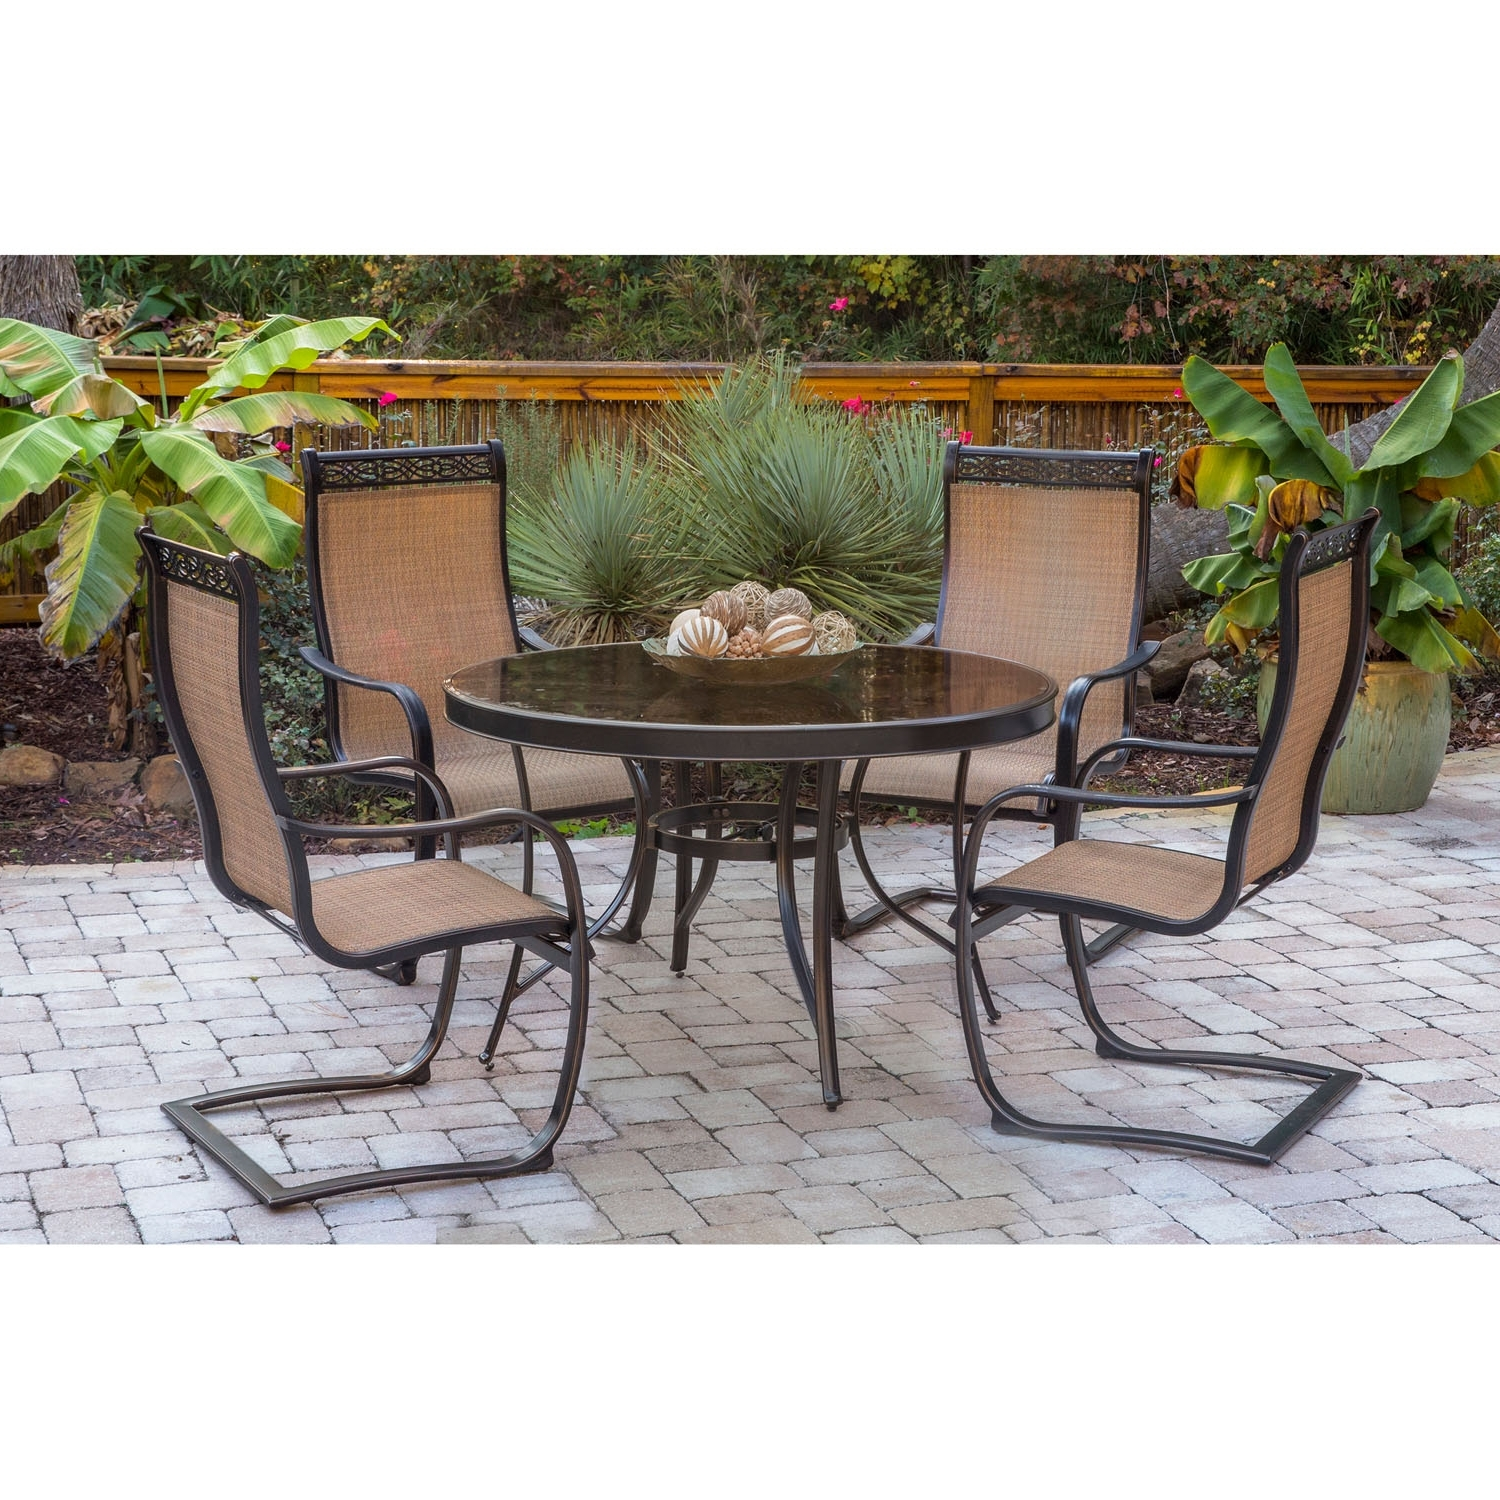 Monaco Dining Tables With Current Monaco 5 Piece Outdoor Dining Set With C Spring Chairs And Glass Top (View 15 of 25)